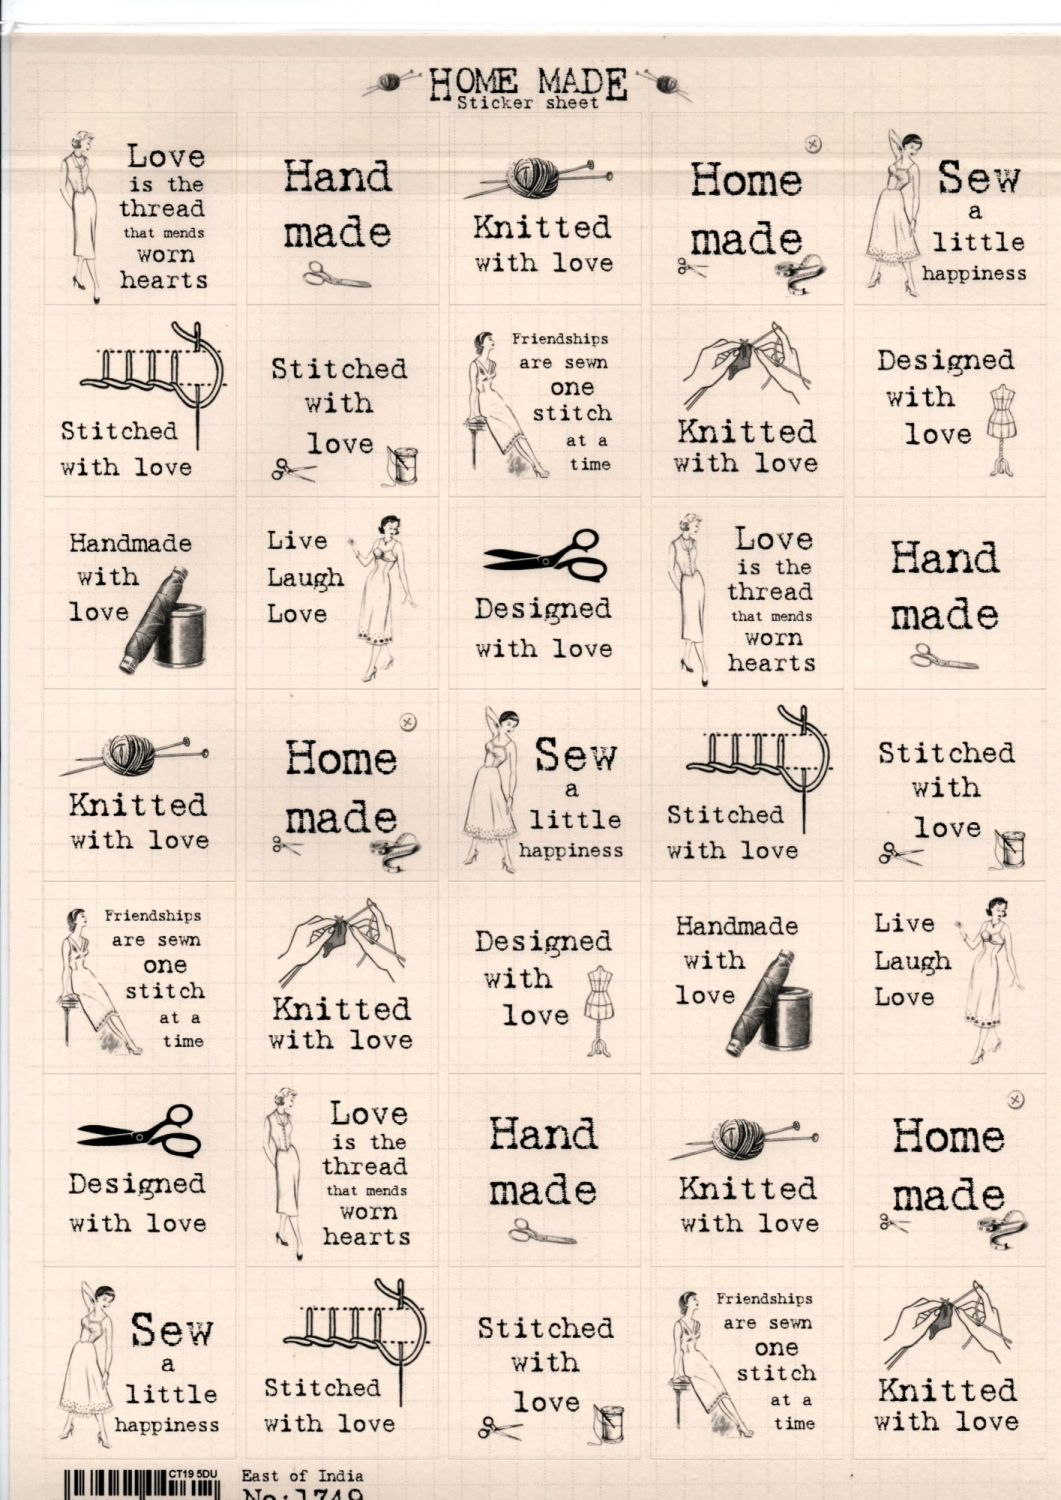 East Of India: Sticker Sheets A 4 - Home Made